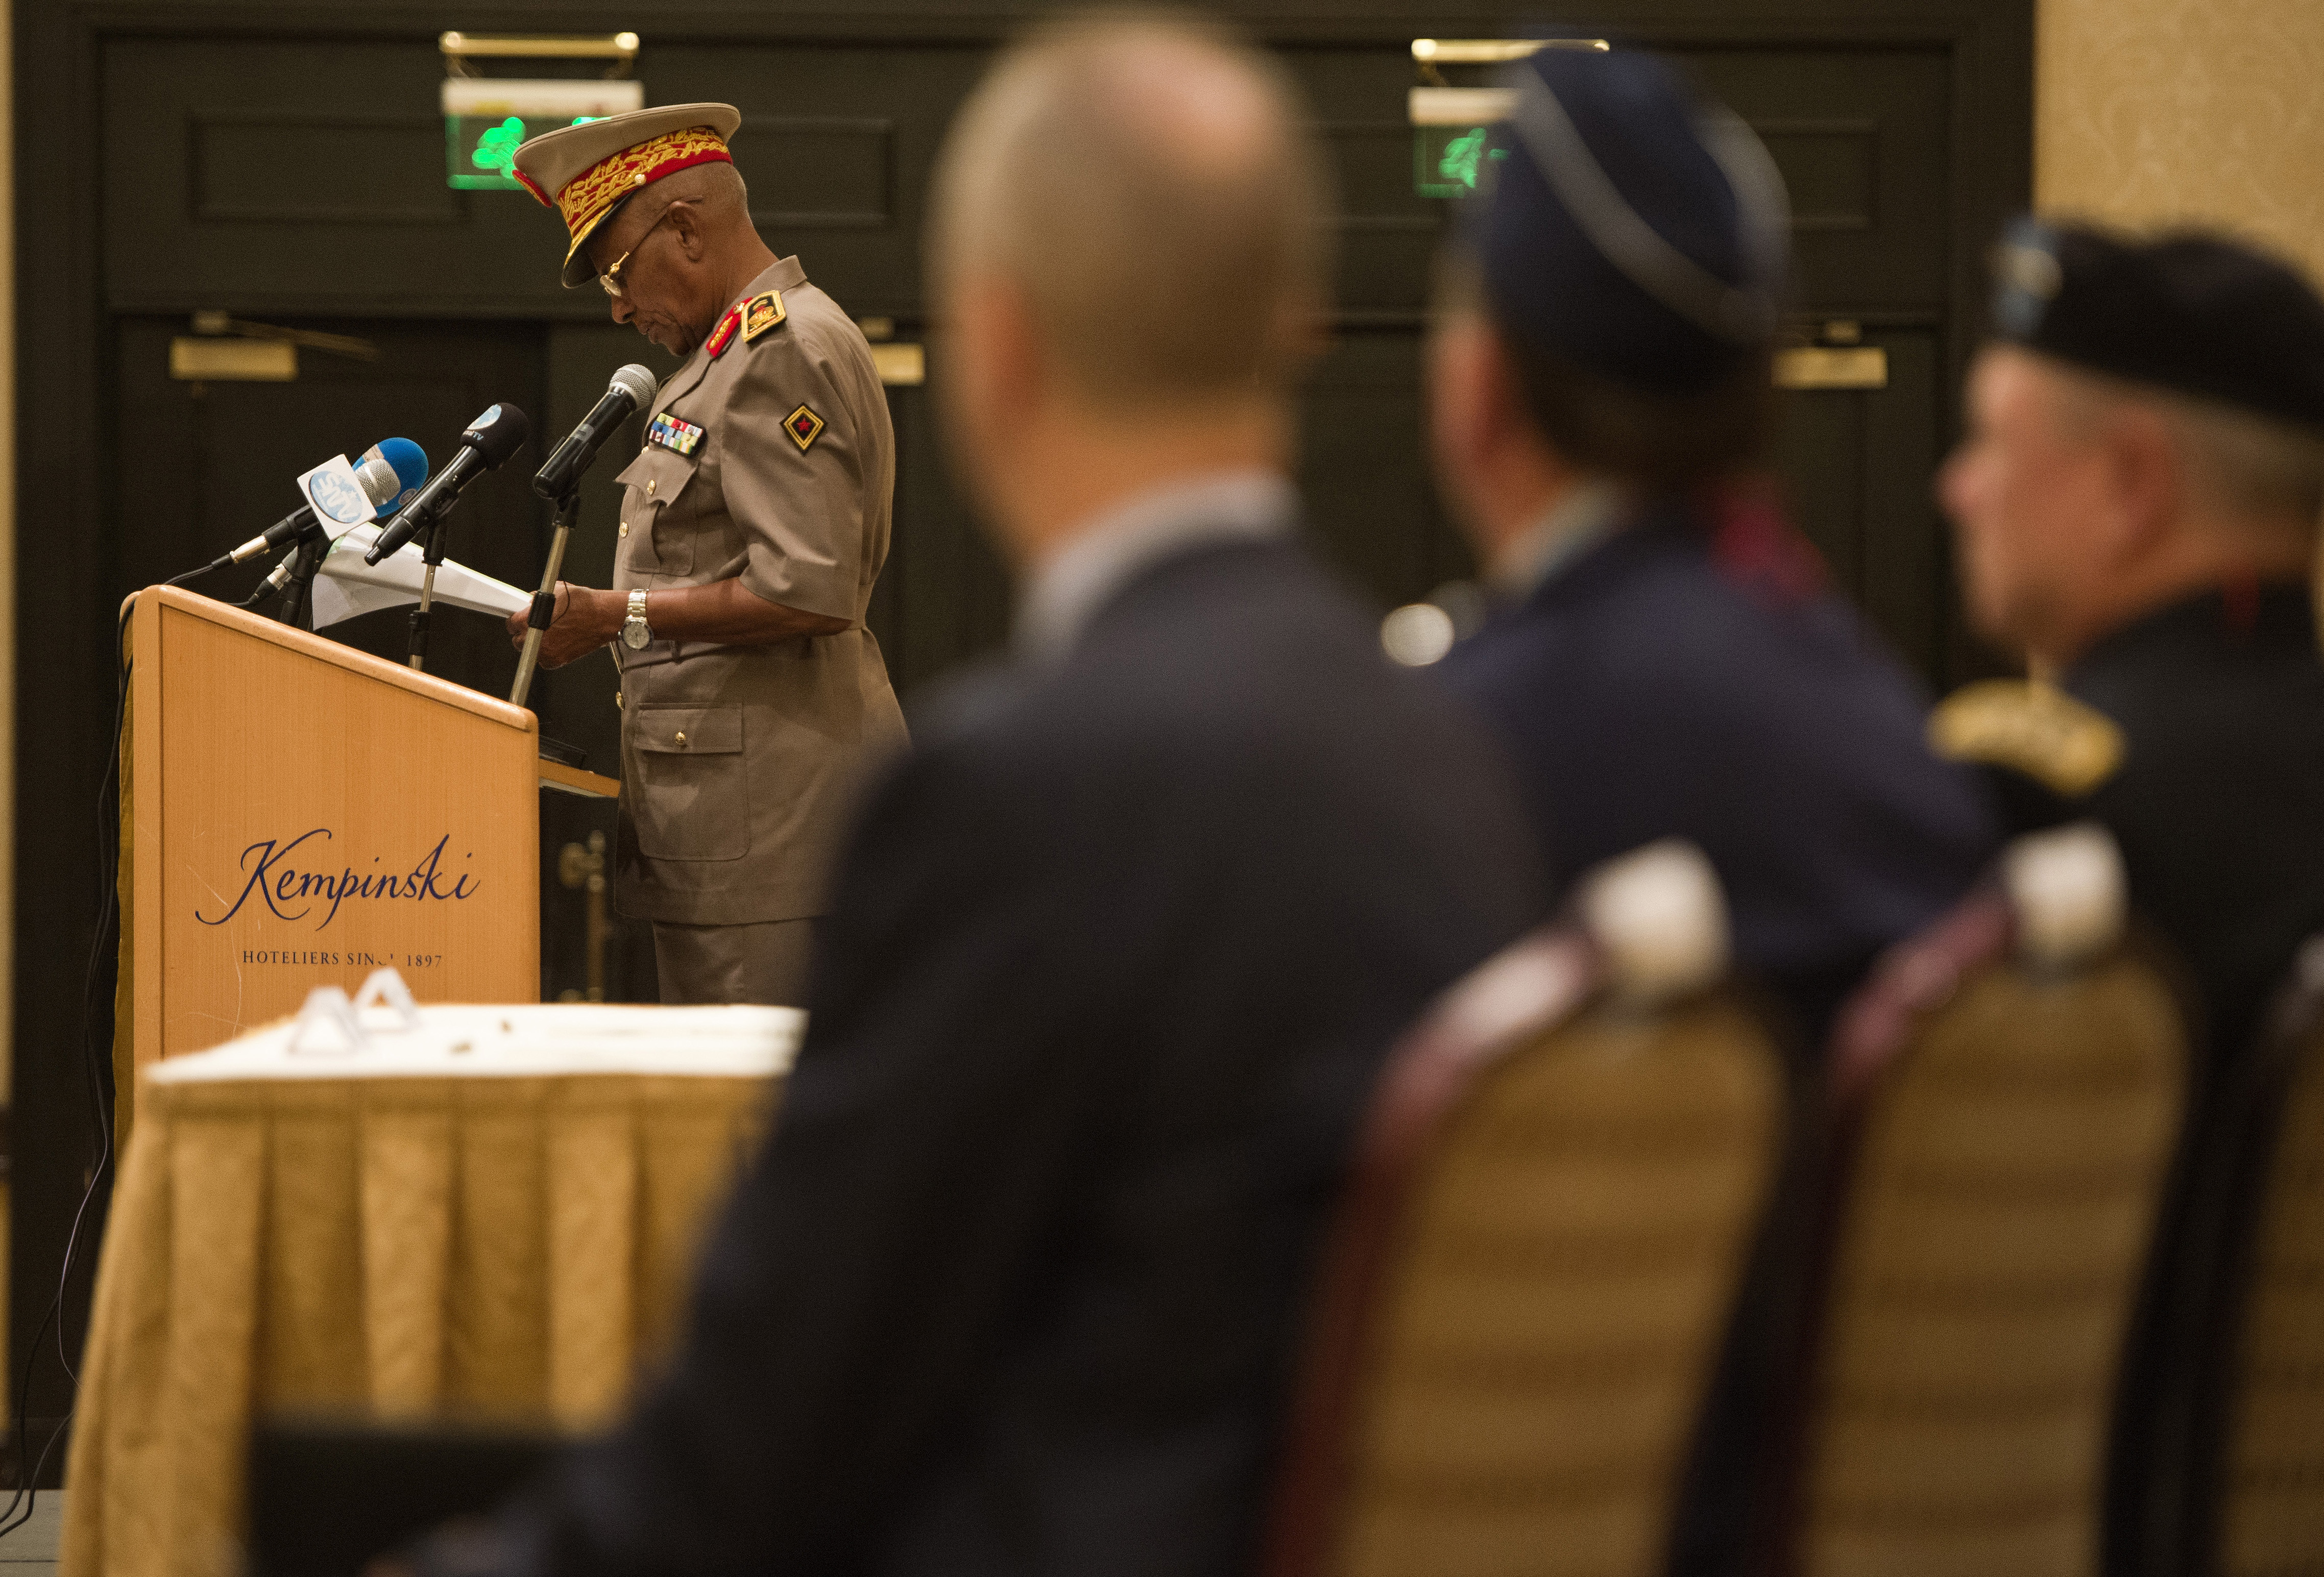 Maj. Gen. Zakaria Cheik Ibrahim, Djiboutian Armed Forces (FAD) chief of defense, speaks at the Kentucky National Guard and FAD State Partnership Program agreement signing ceremony at the Kempinski Hotel, Djibouti, June 2, 2015. Zakaria spoke about the strong partnership between the U.S. and Djibouti that began with both countries' commitment to fight terrorism after 9/11, which led to the American presence at Camp Lemonnier, Djibouti. (U.S. Air Force photo by Staff Sgt. Nathan Maysonet)